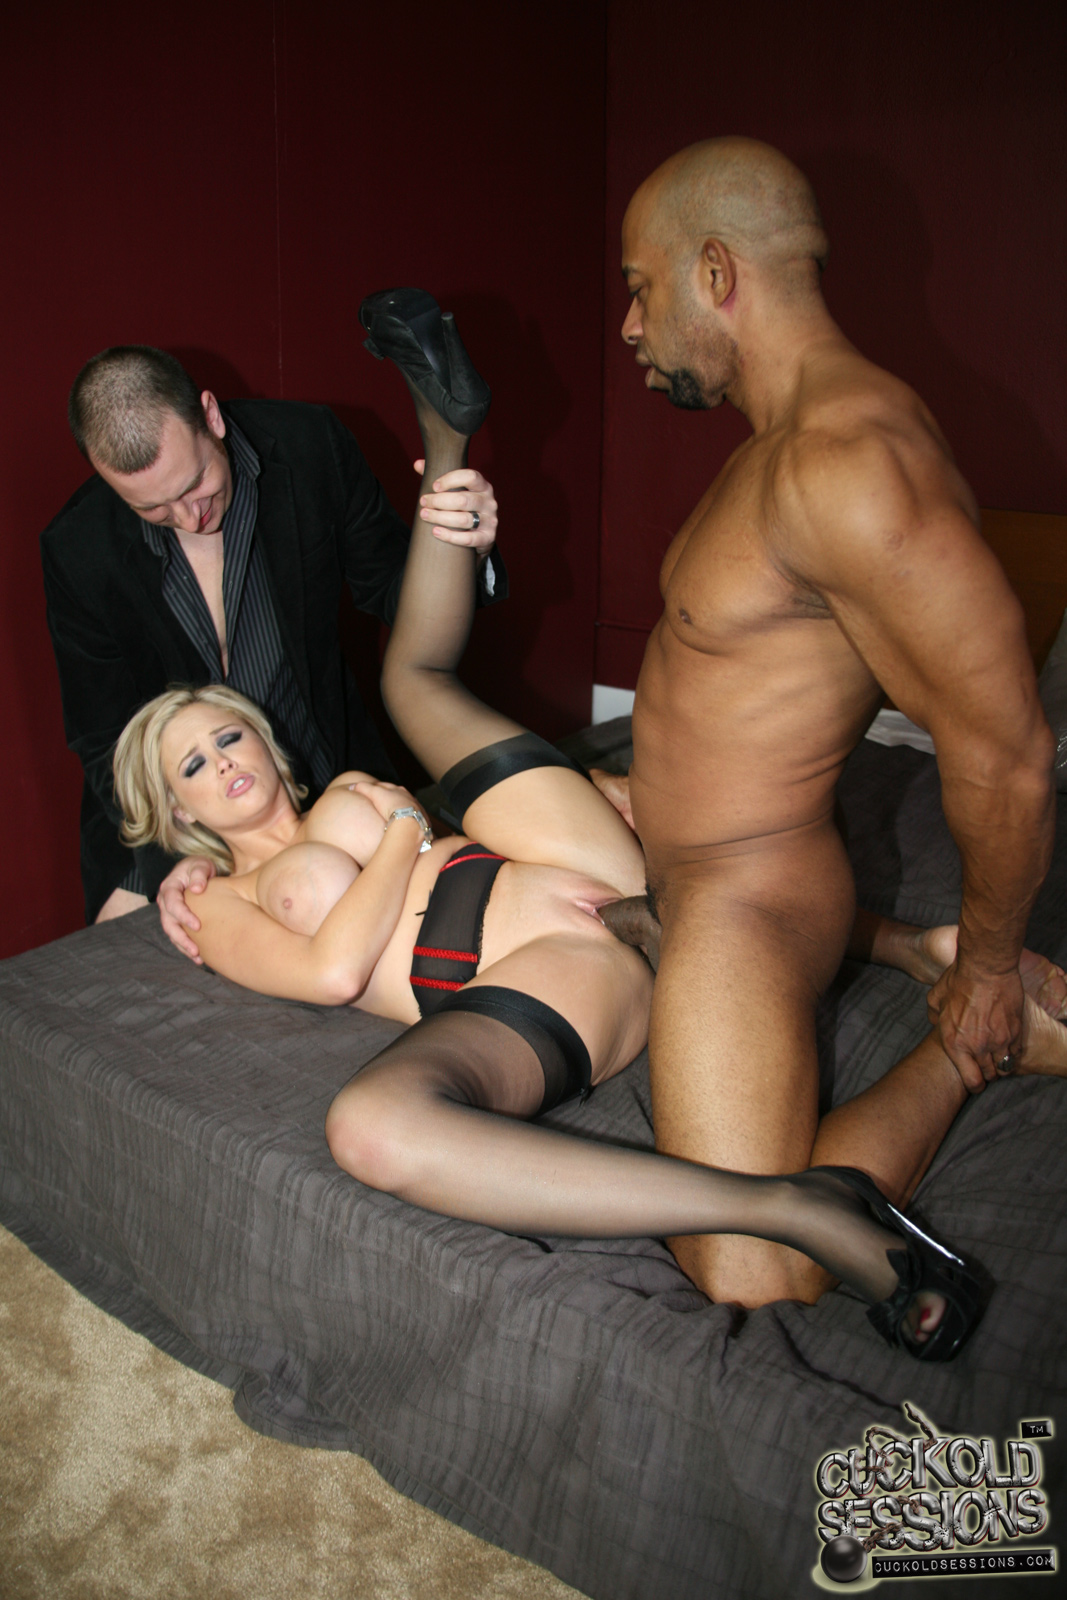 Bbc dines on blonde hotwife - 1 part 4